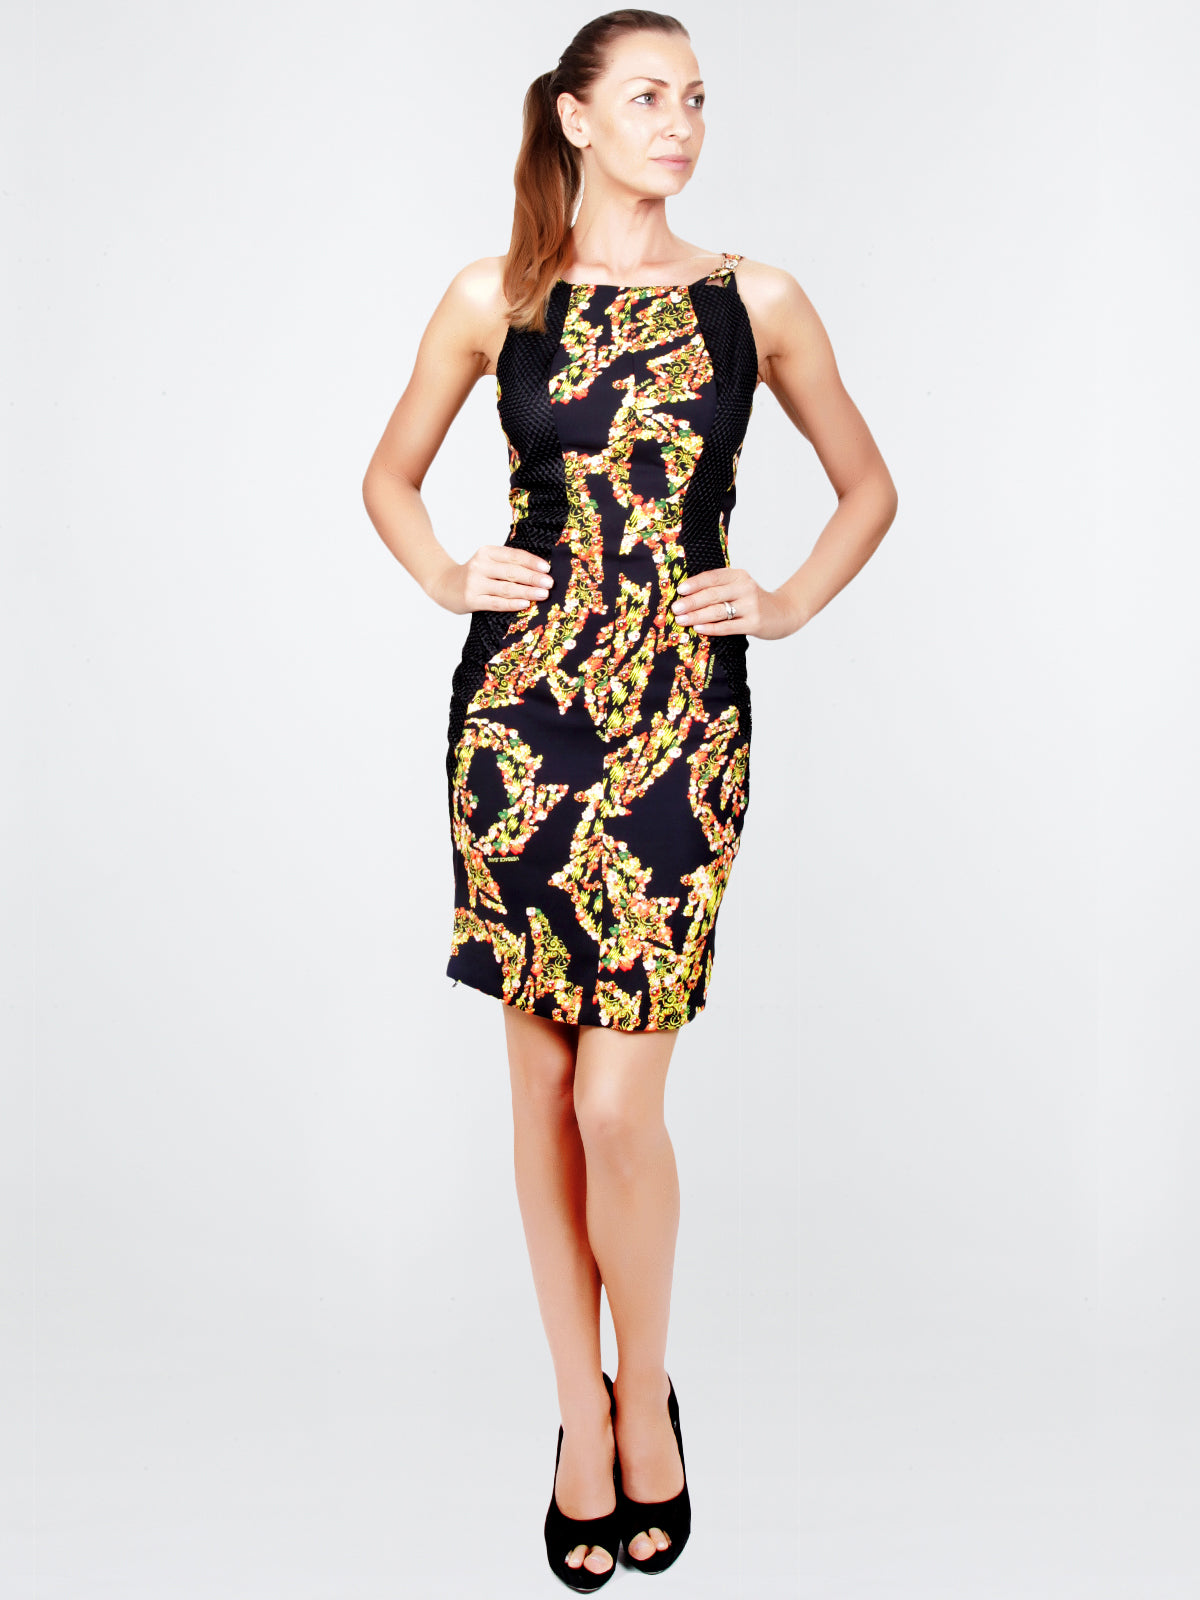 VERSACE JEANS-Barocco Garden Body Con Dress – Elilhaam b0303fca7d8